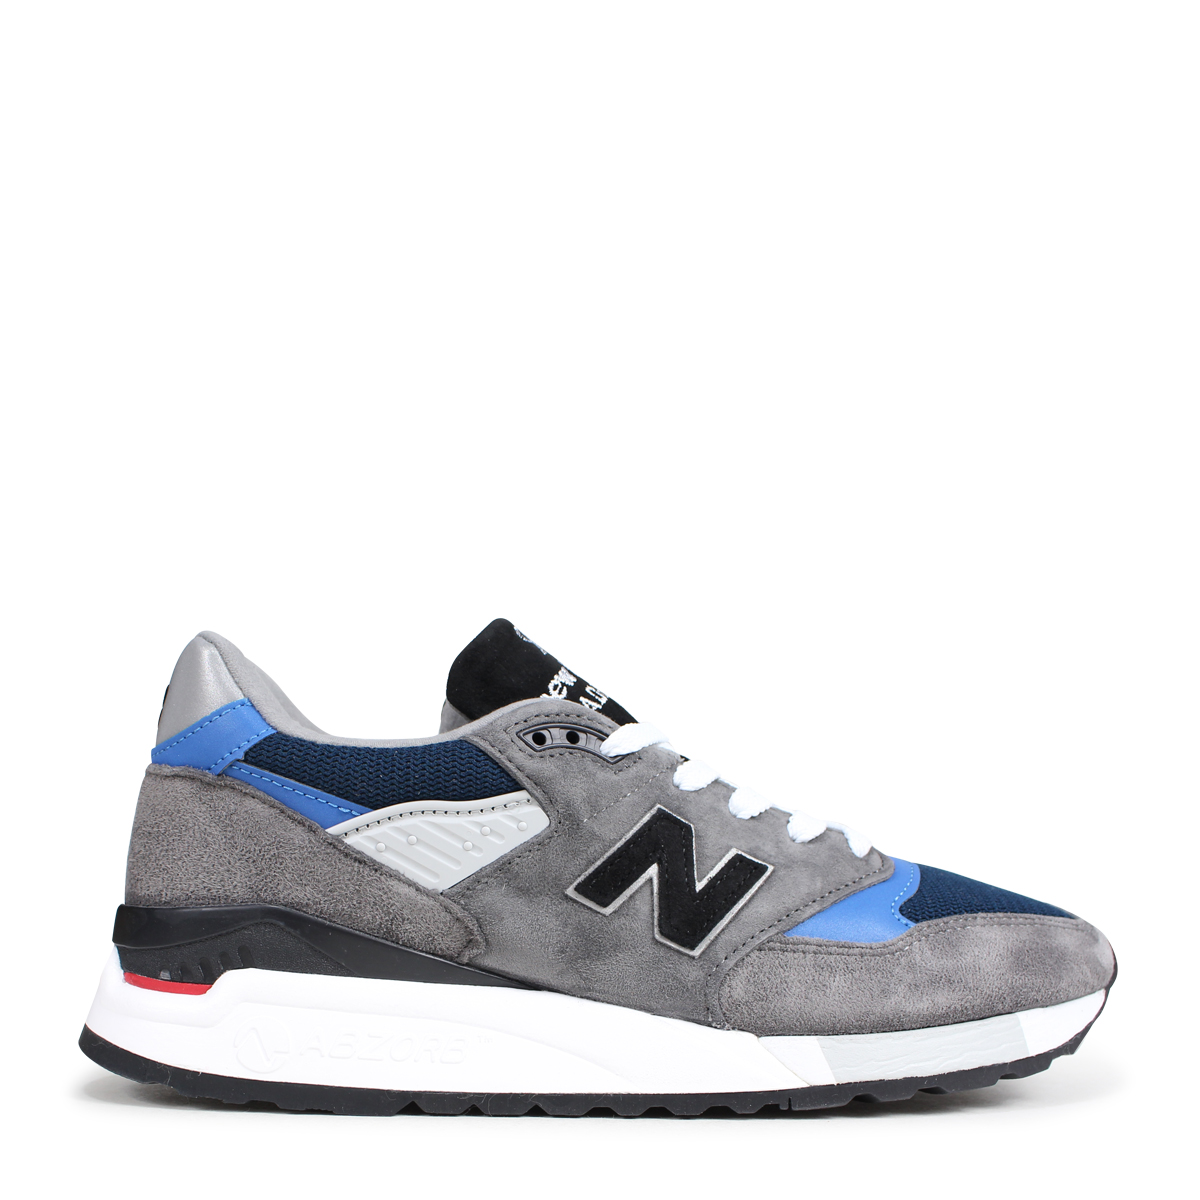 half off 3b39e d81be new balance M998NF New Balance 998 men's sneakers D Wise MADE IN USA gray  [9/13 Shinnyu load] [189]